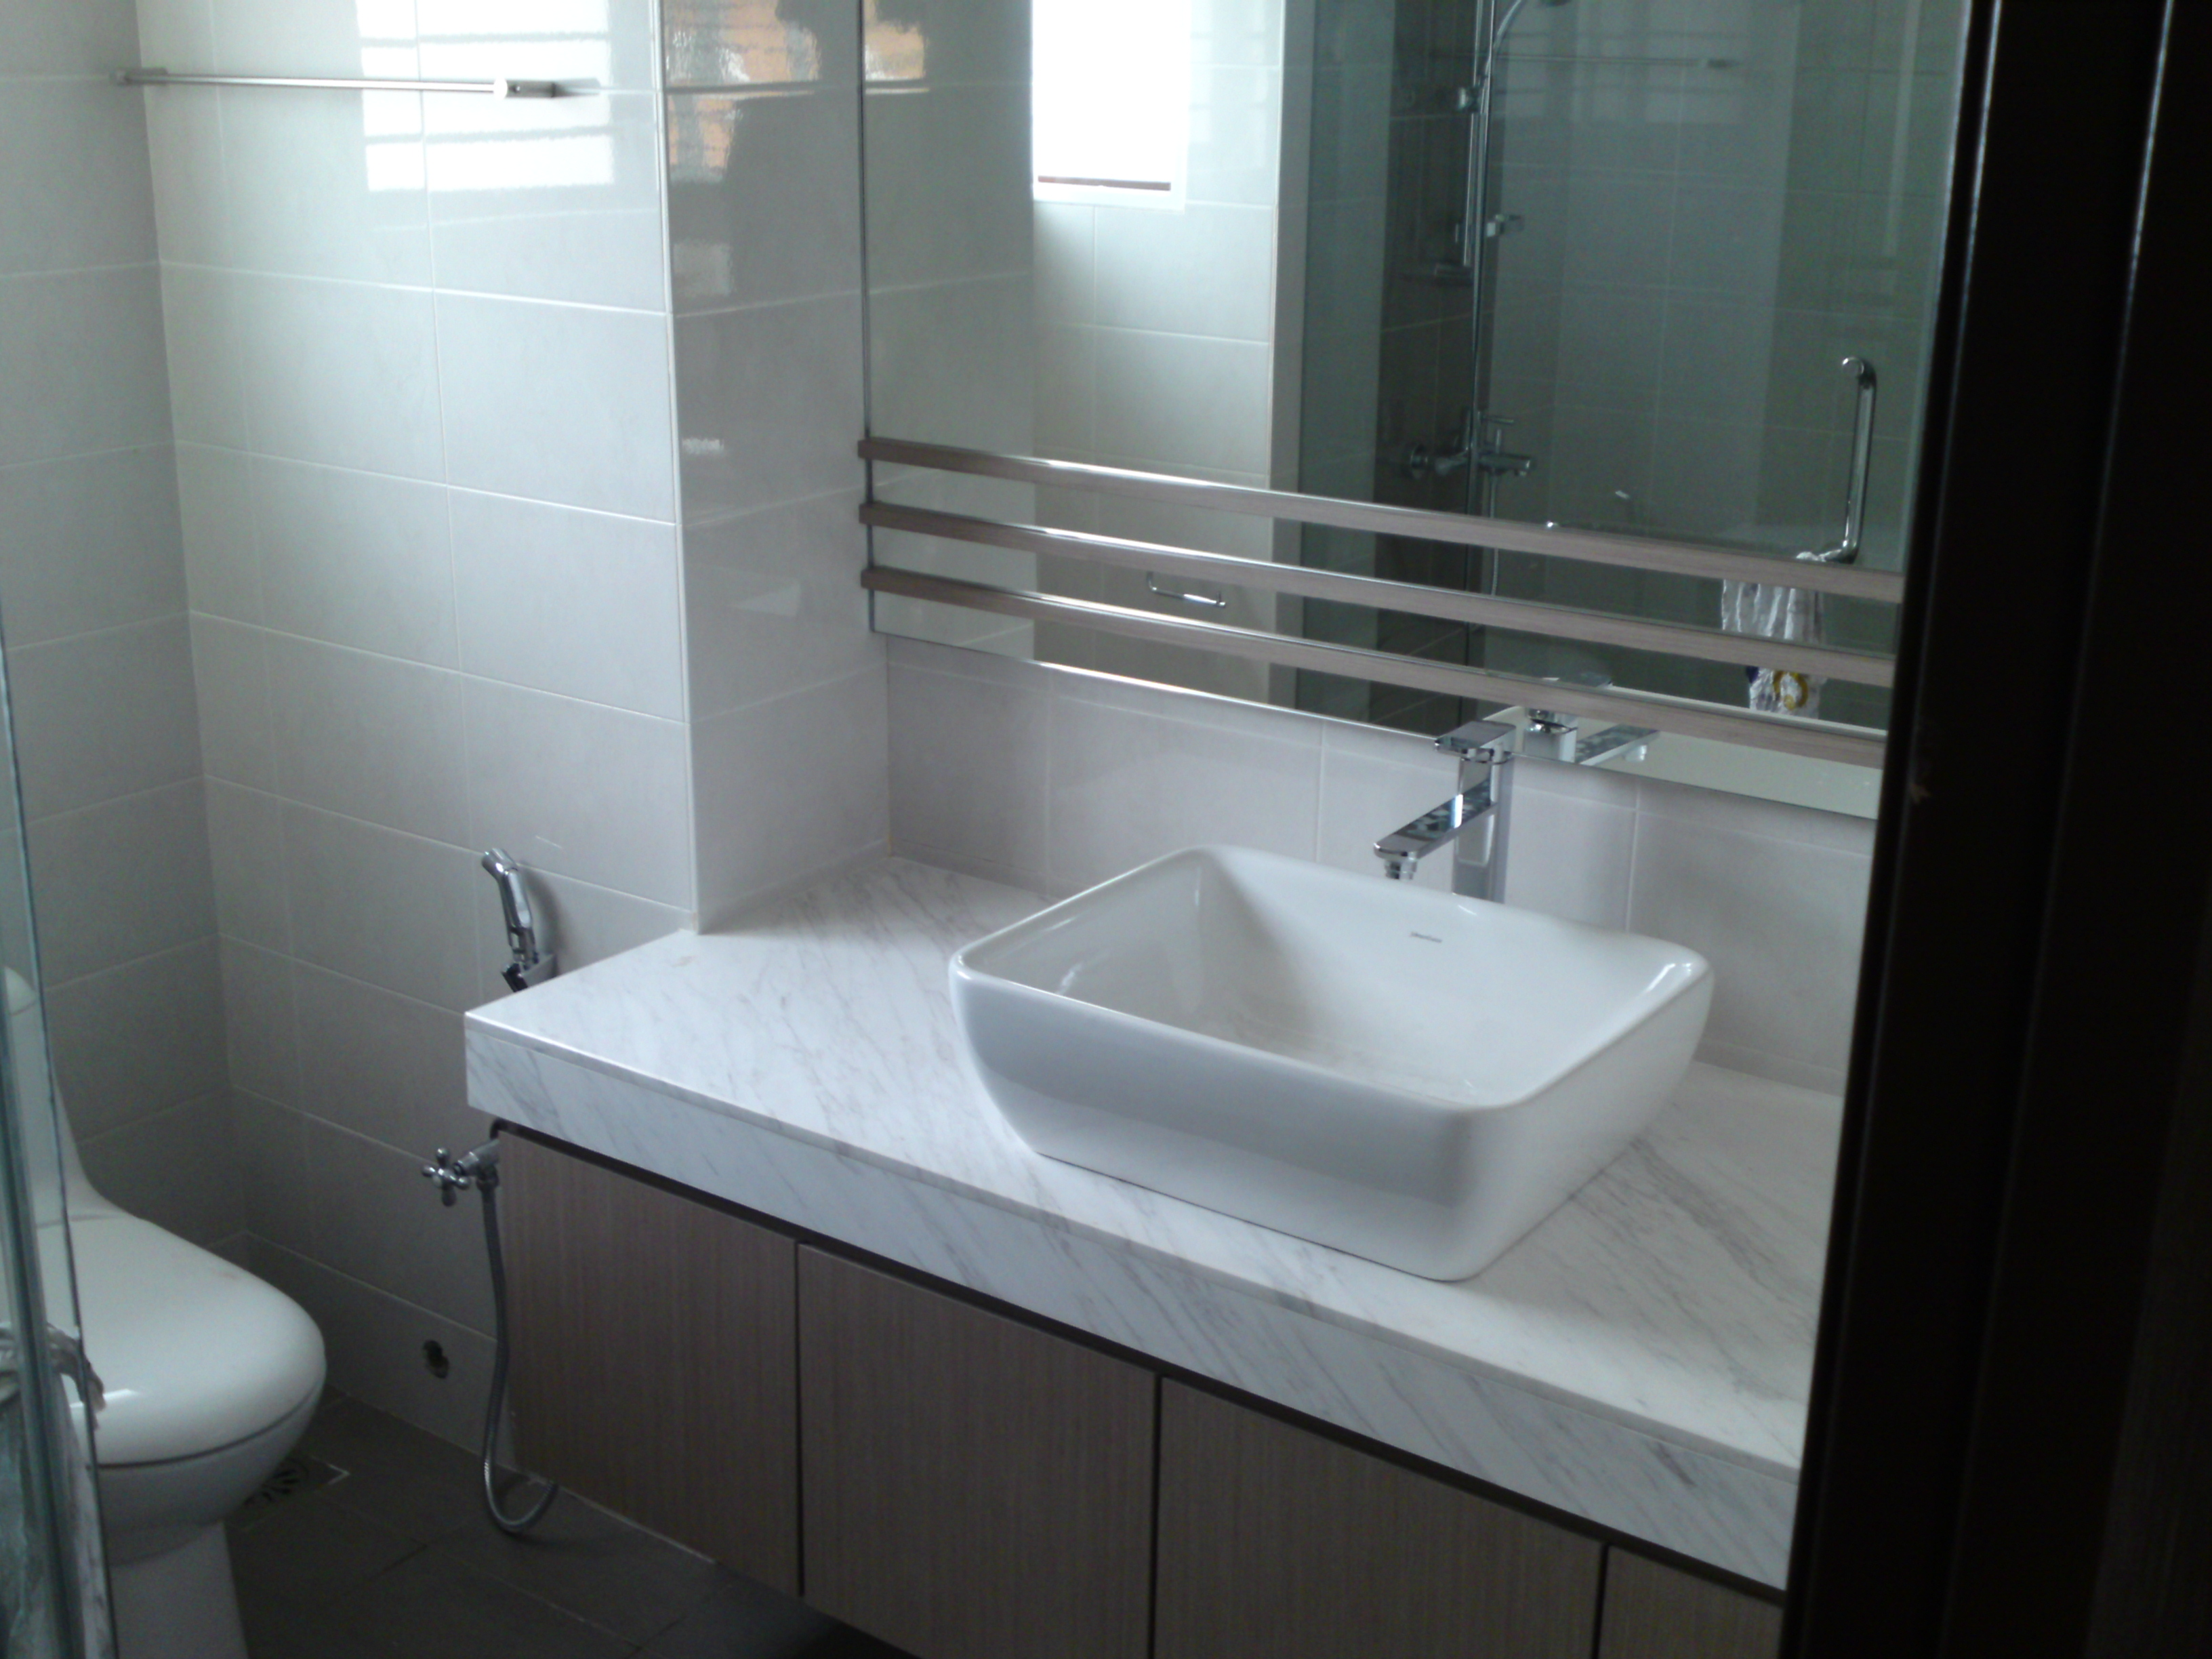 Bathroom cabinet with solid surface  LKY Renovation Works